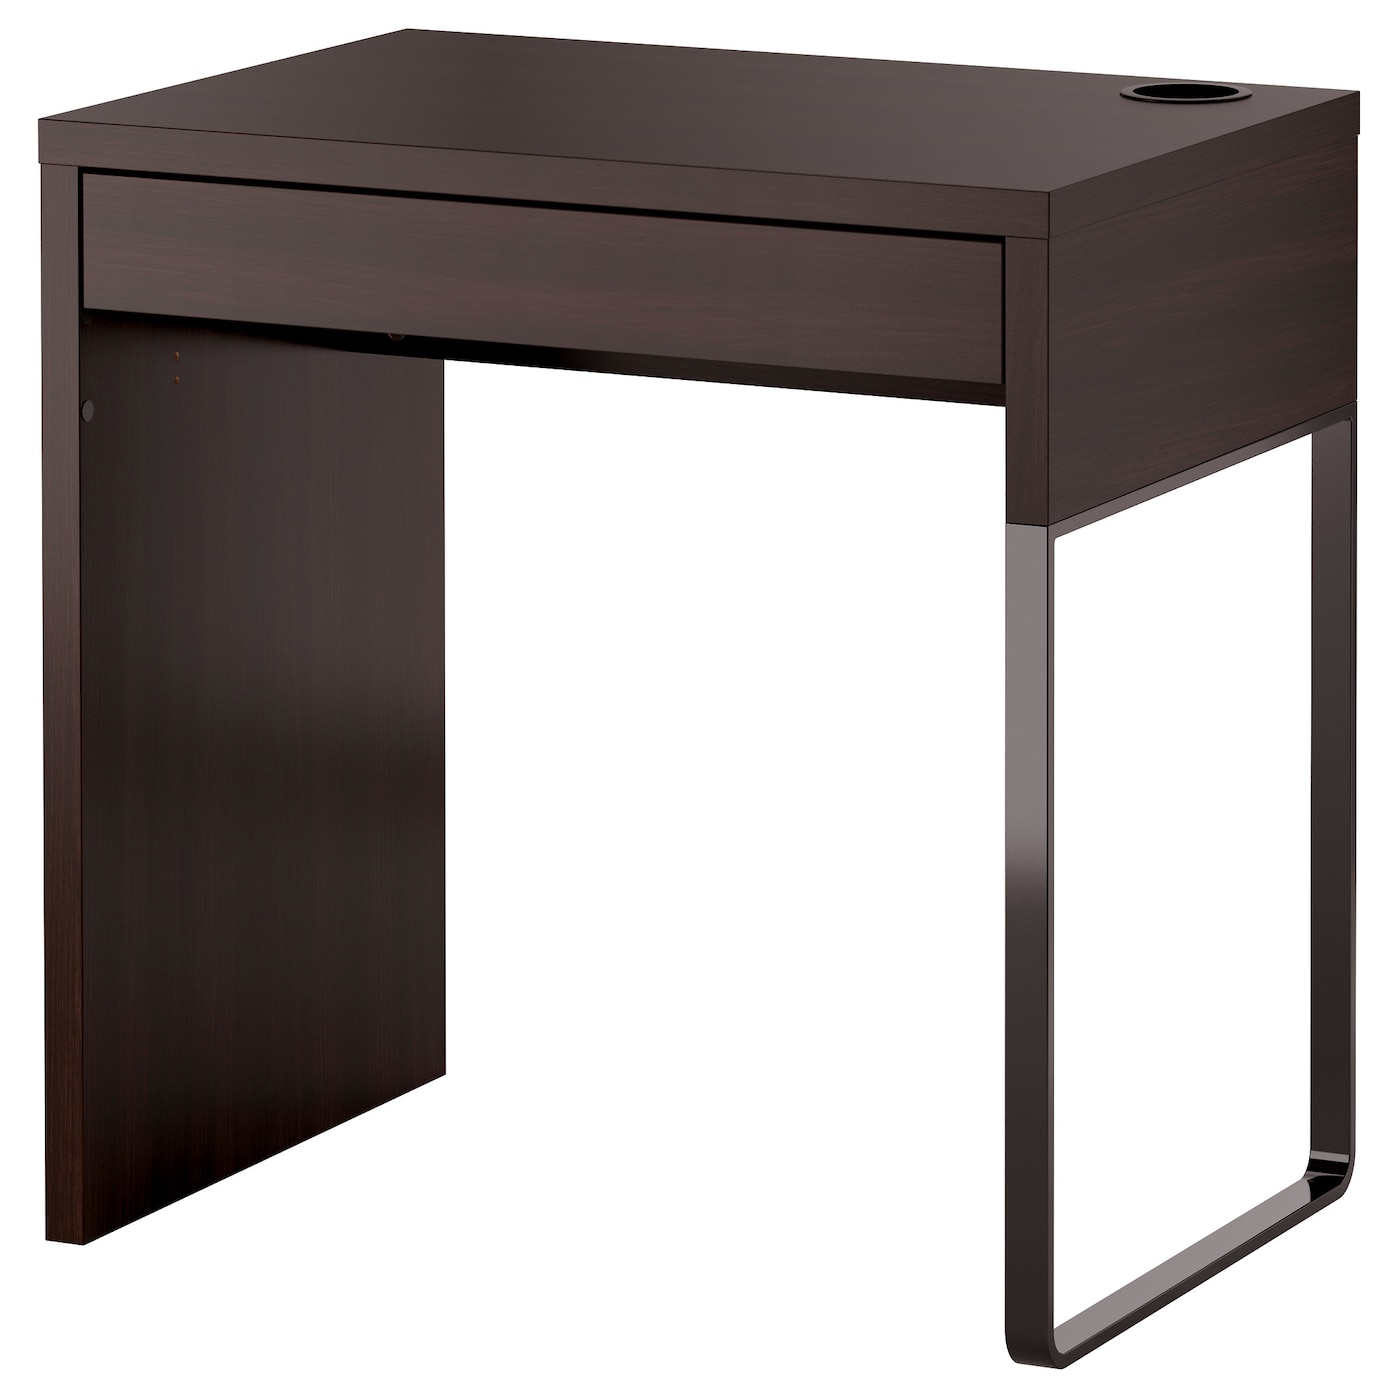 micke bureau brun noir 73x50 cm ikea. Black Bedroom Furniture Sets. Home Design Ideas